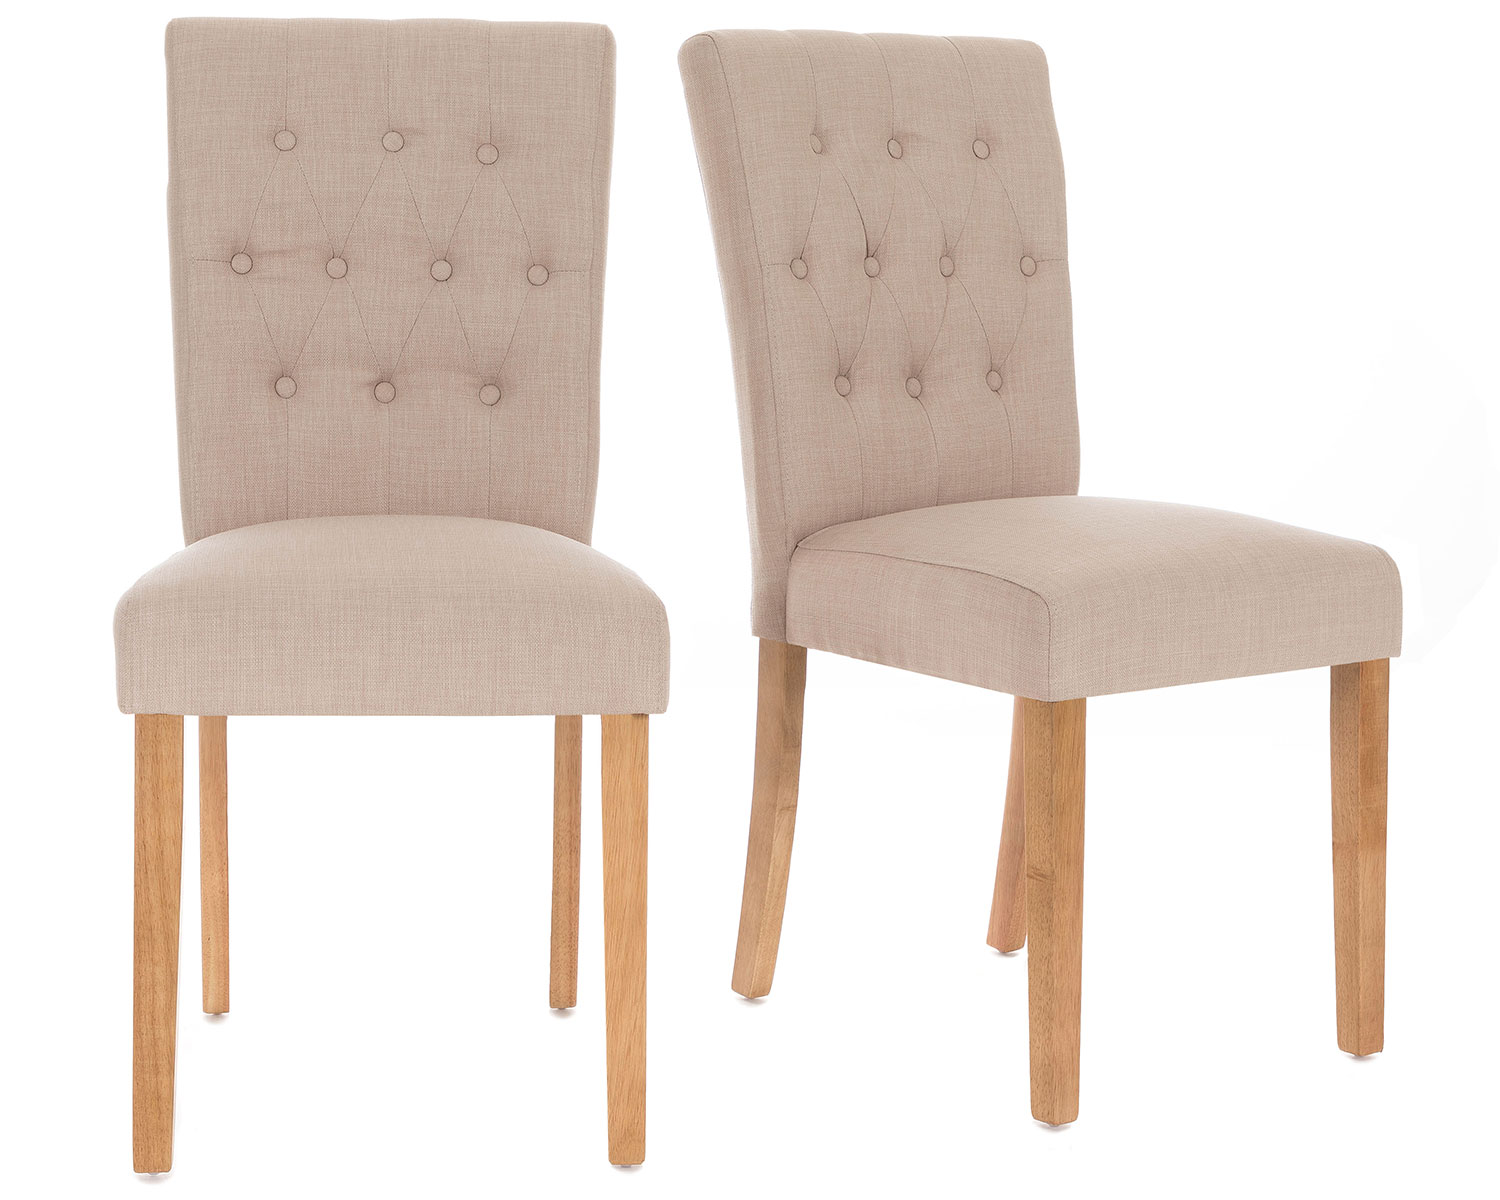 Pair of Florence Button back Linen Dining Chairs in Cream